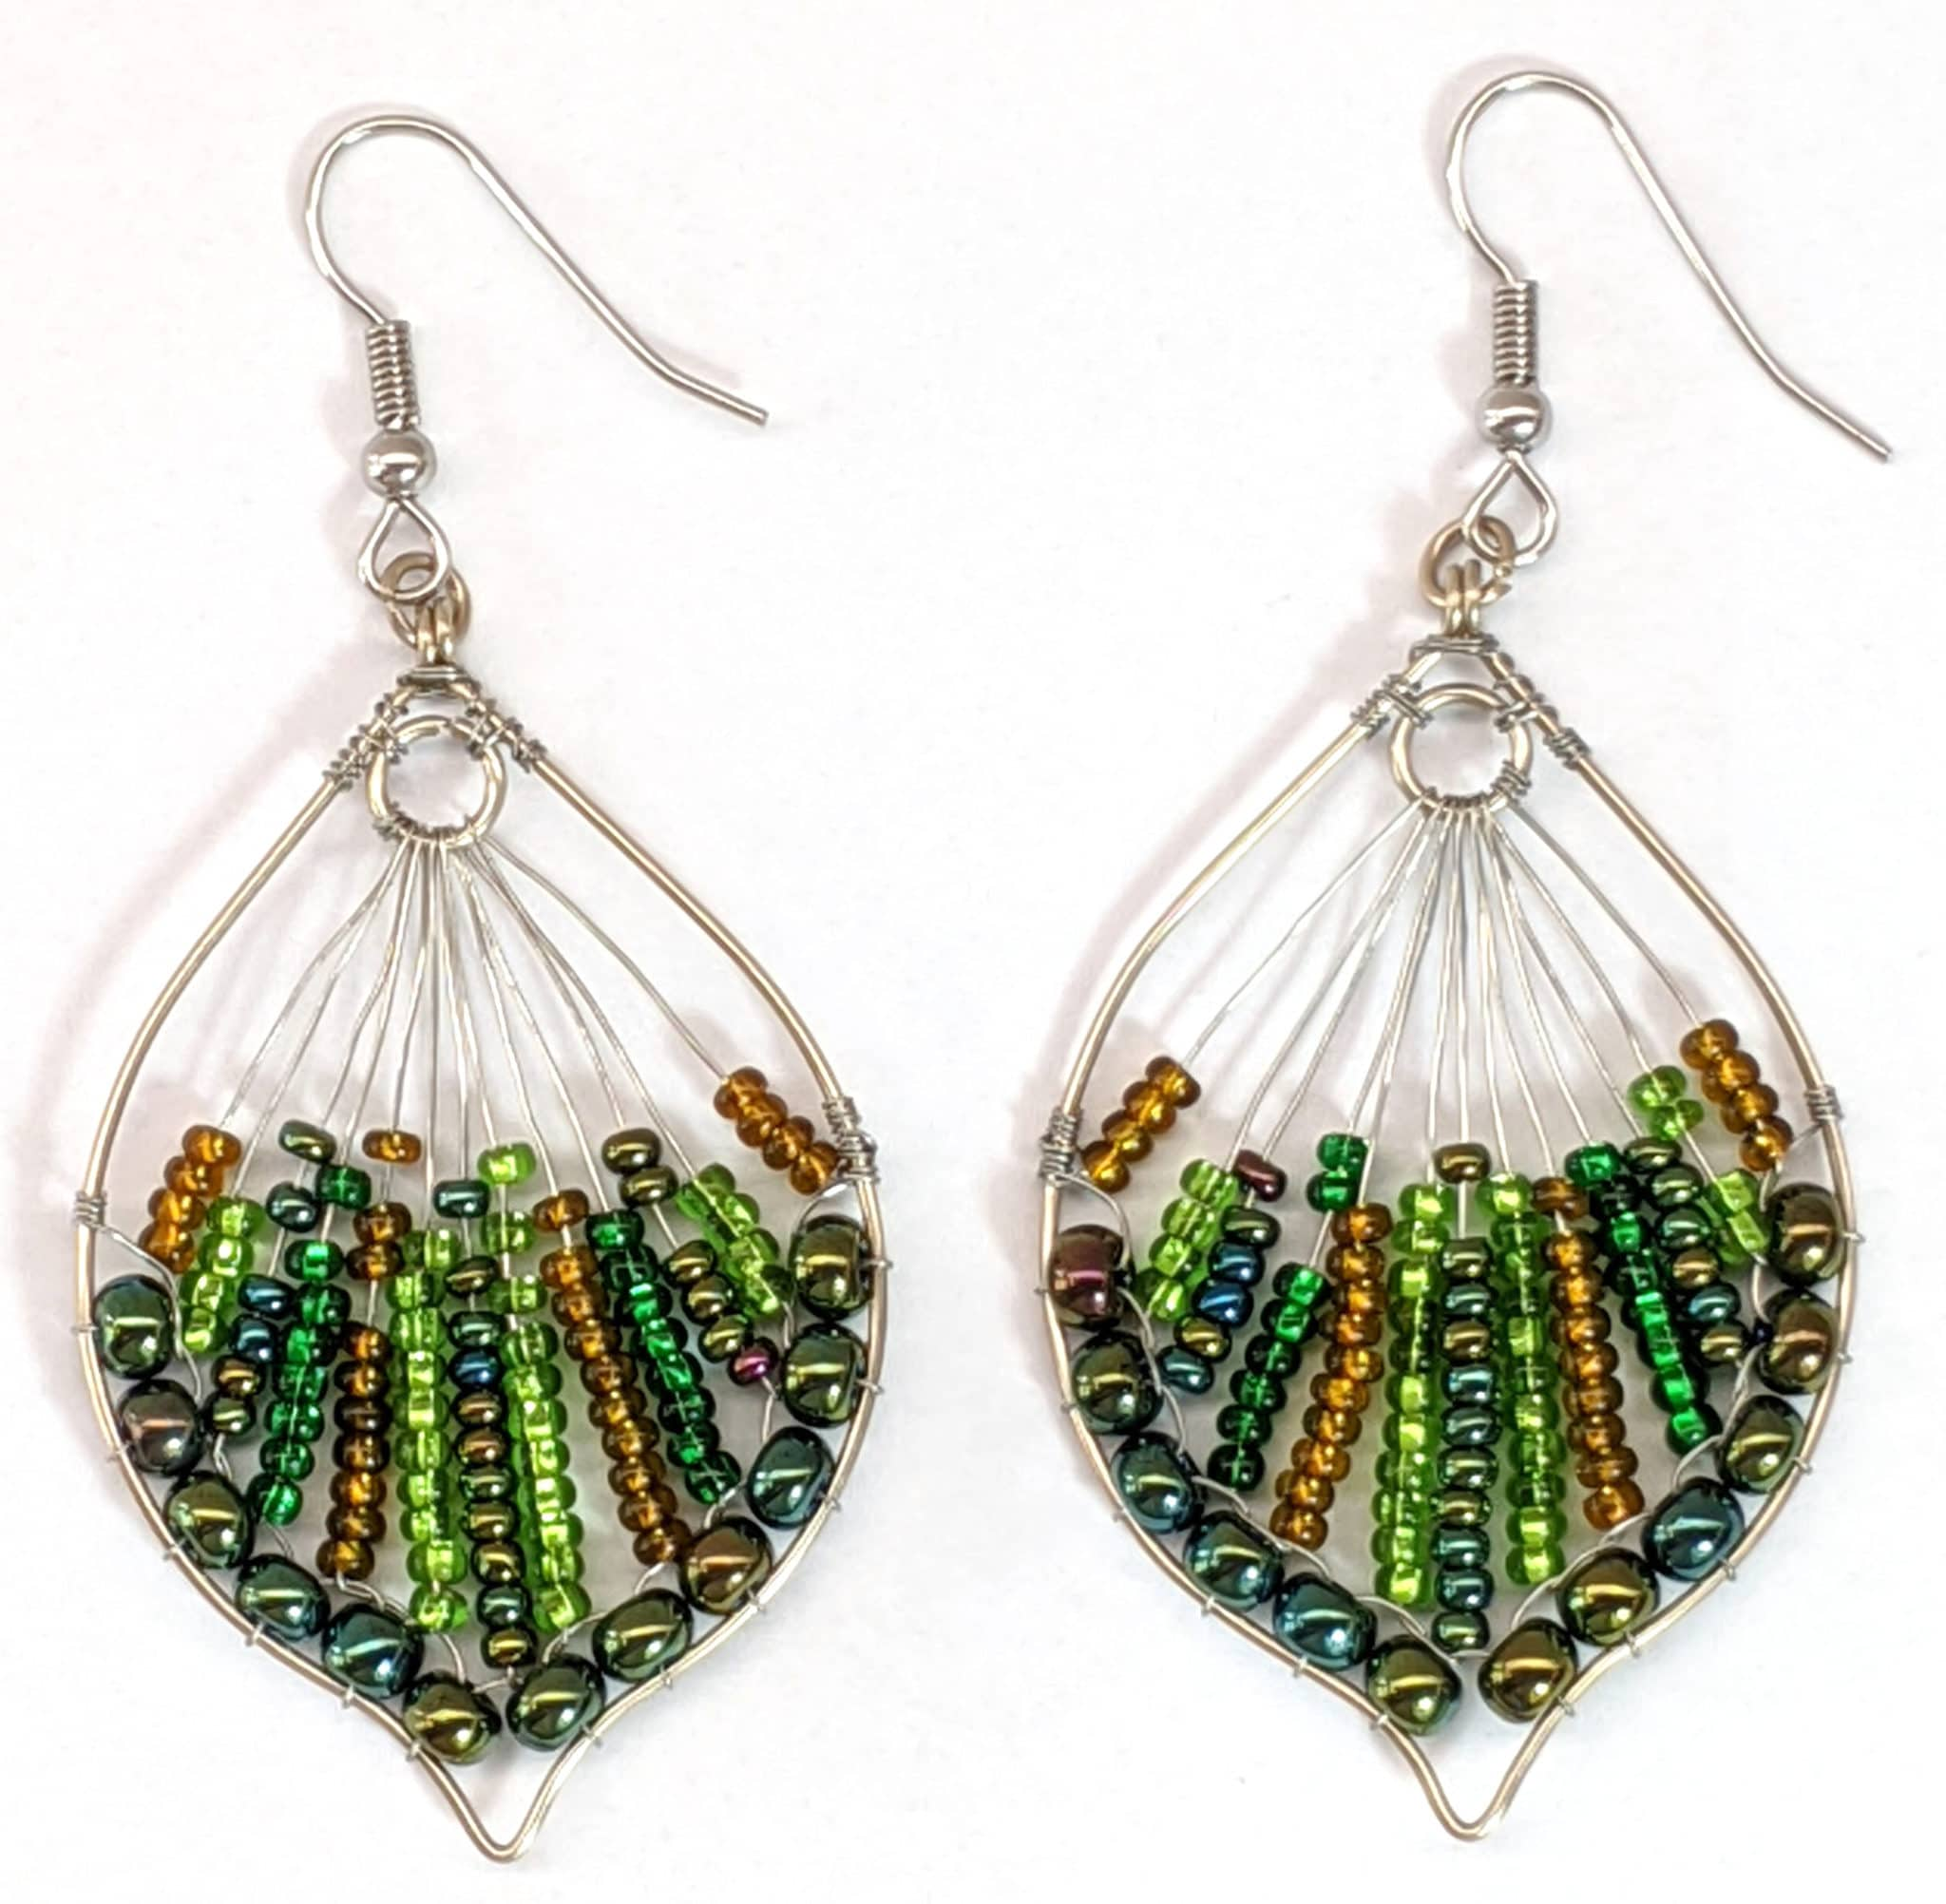 Peacock Tail Beaded Earrings - Forest Green